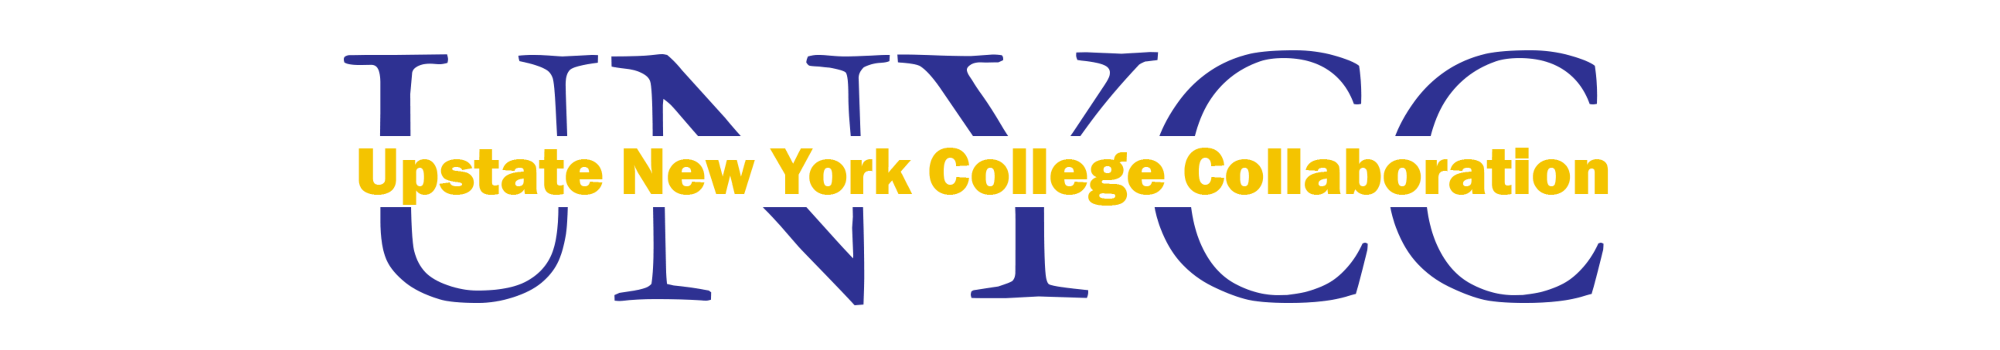 Upstate New York College Collaboration